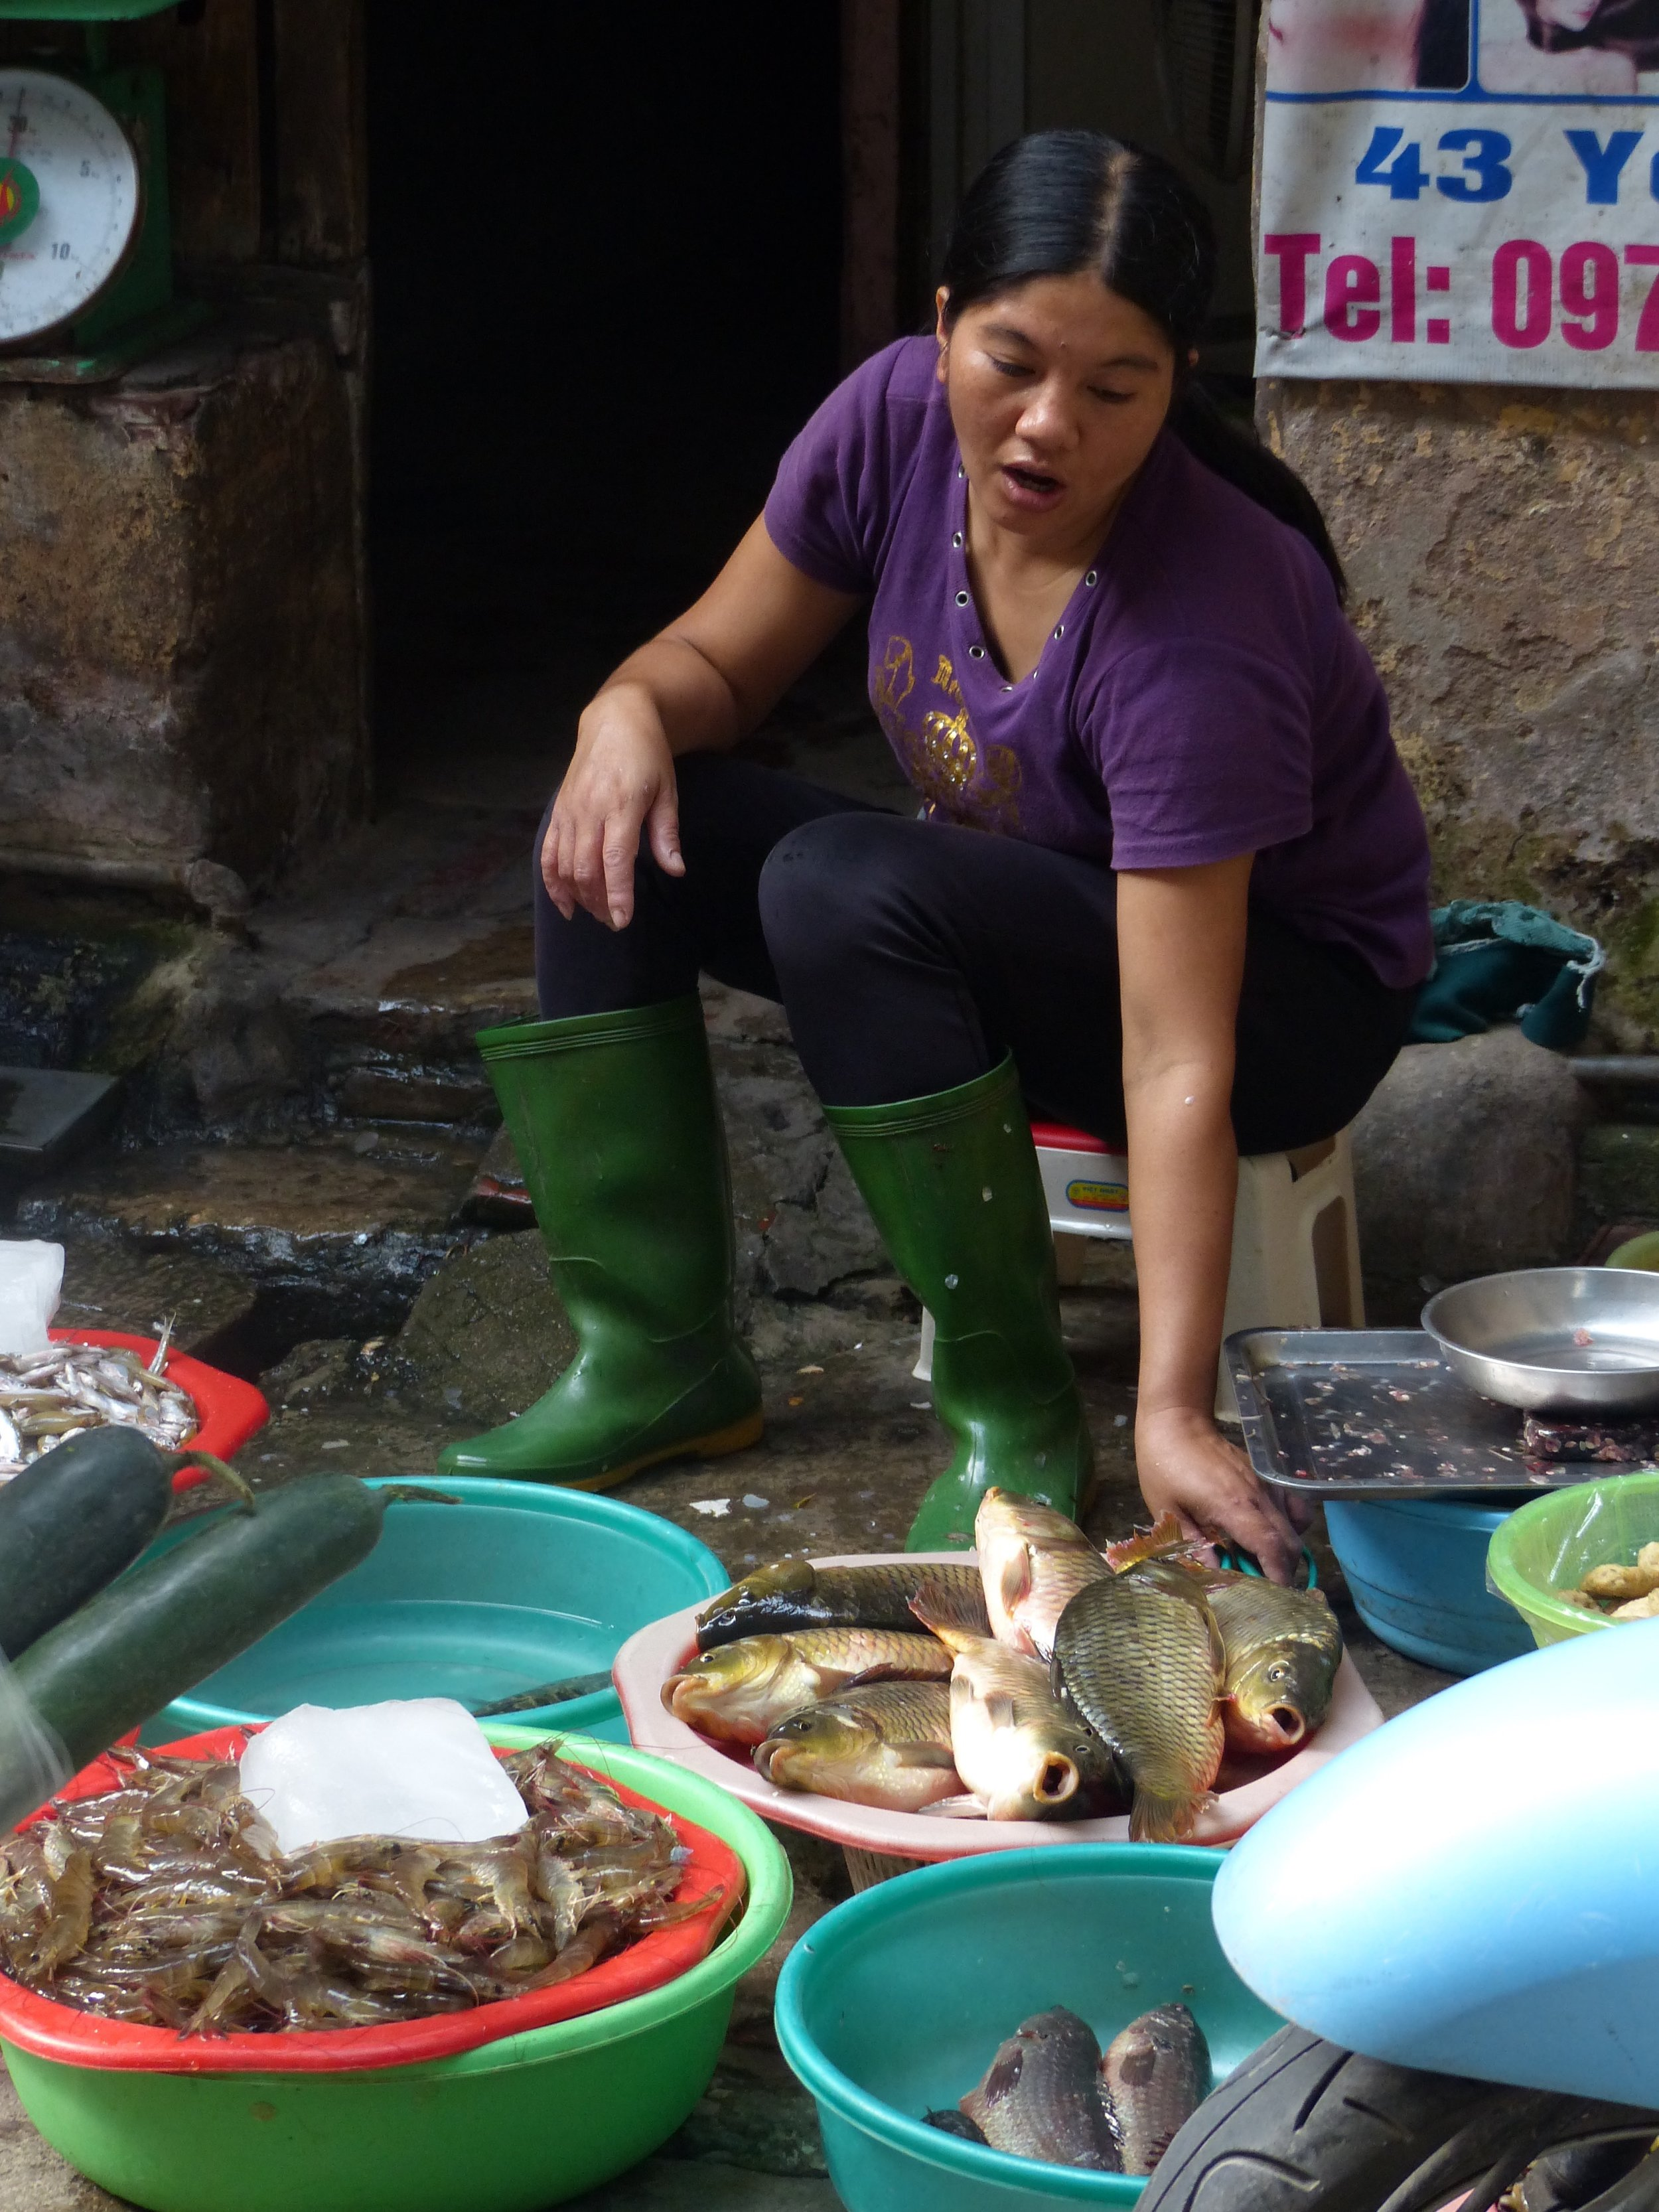 In Hanoi, we didn't see any fish shops (or butcher shops, or any real food shops). Instead, fish were piled in these buckets with a little hose magic to keep water flowing.